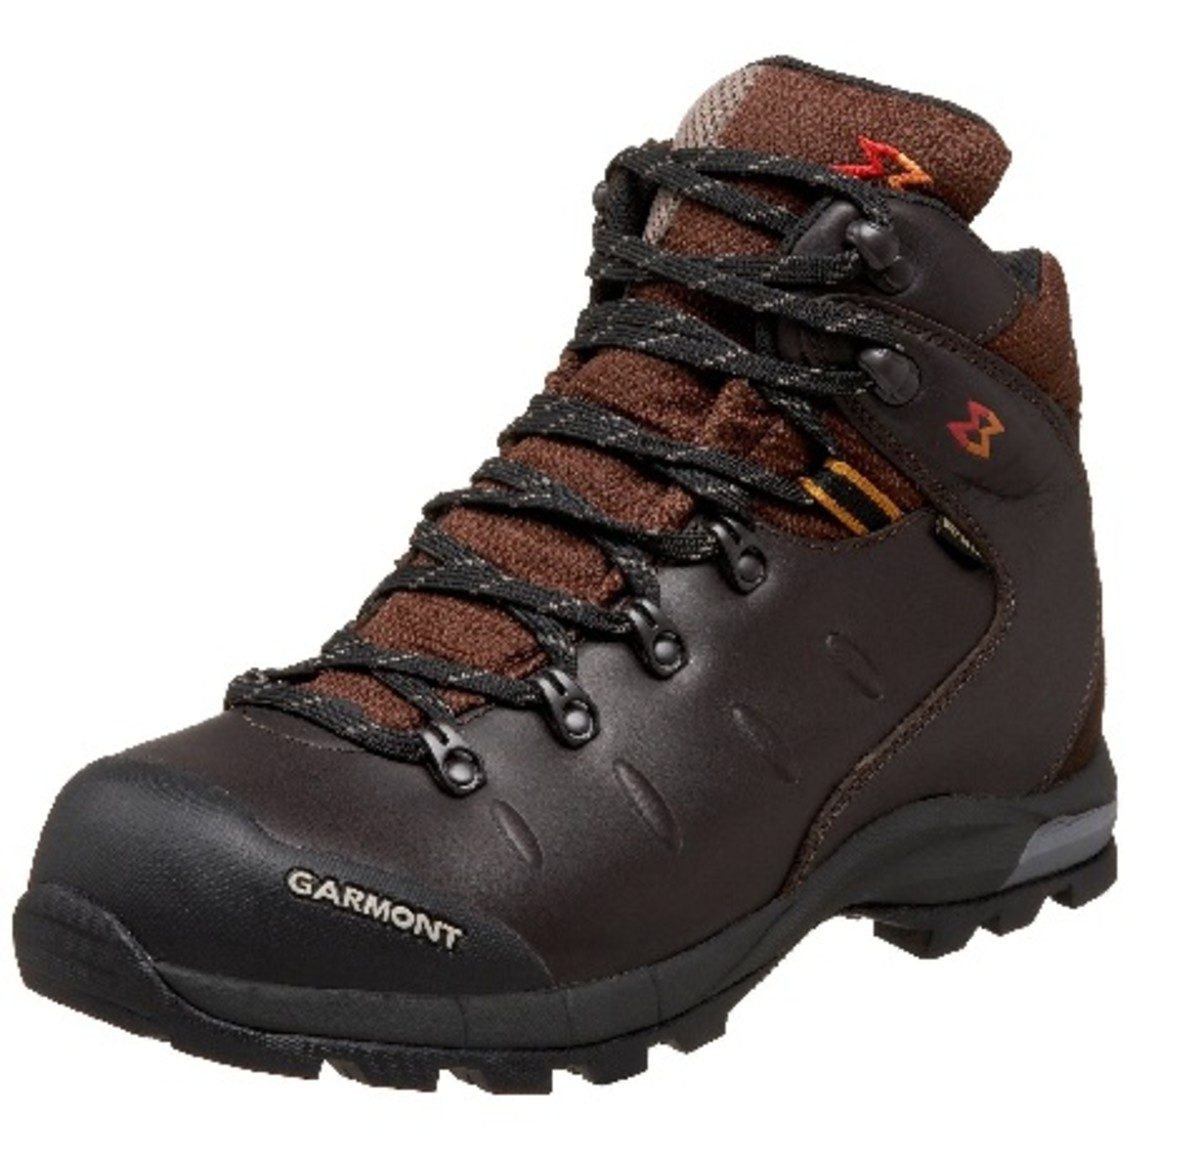 Garmont Hiking Boots Guide - Reviews, Prices, Buy Online